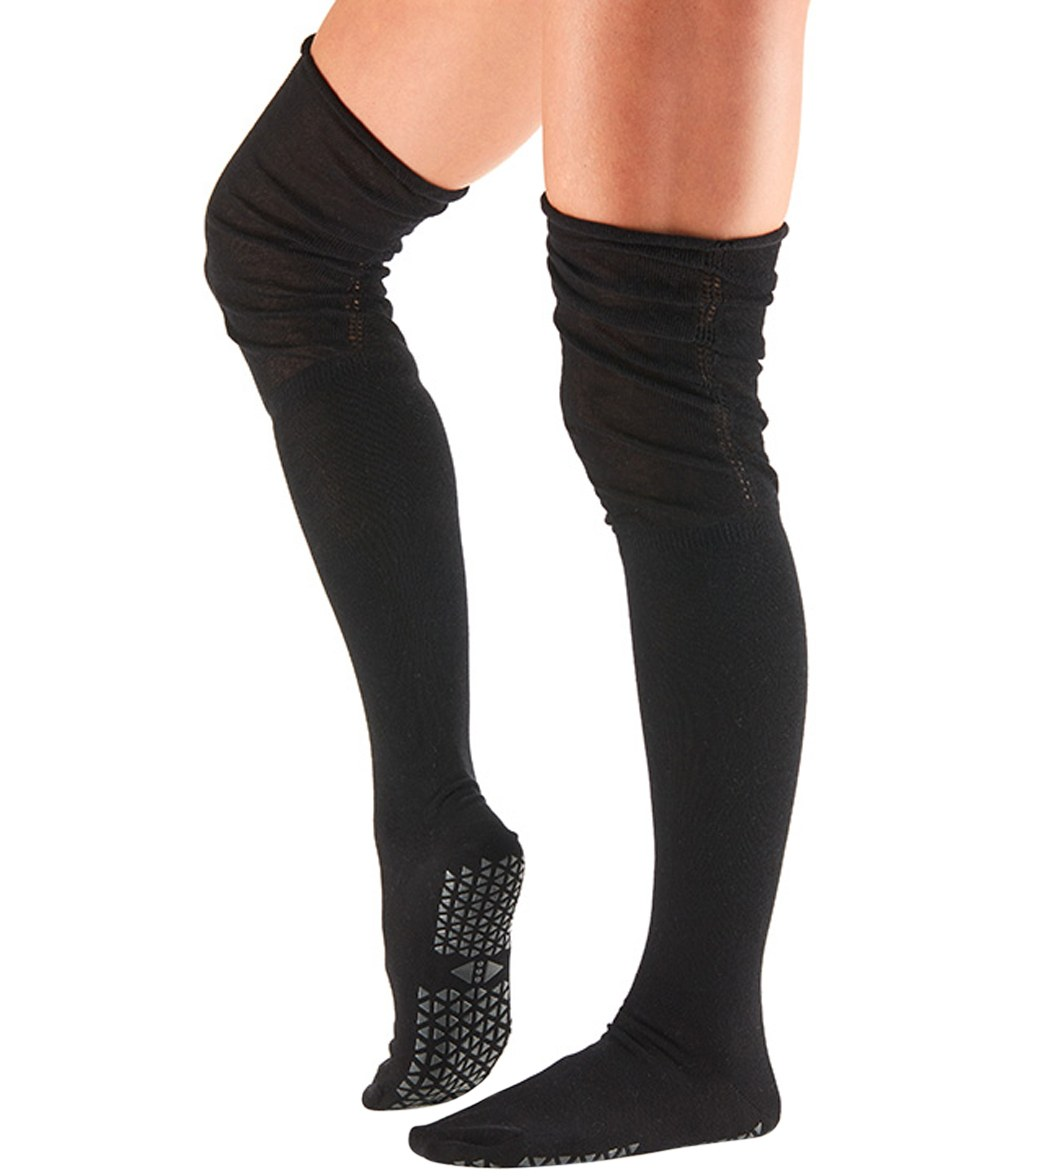 04ce9febbc9 Tavi Noir Charlie Thigh High Barre Grip Socks at YogaOutlet.com